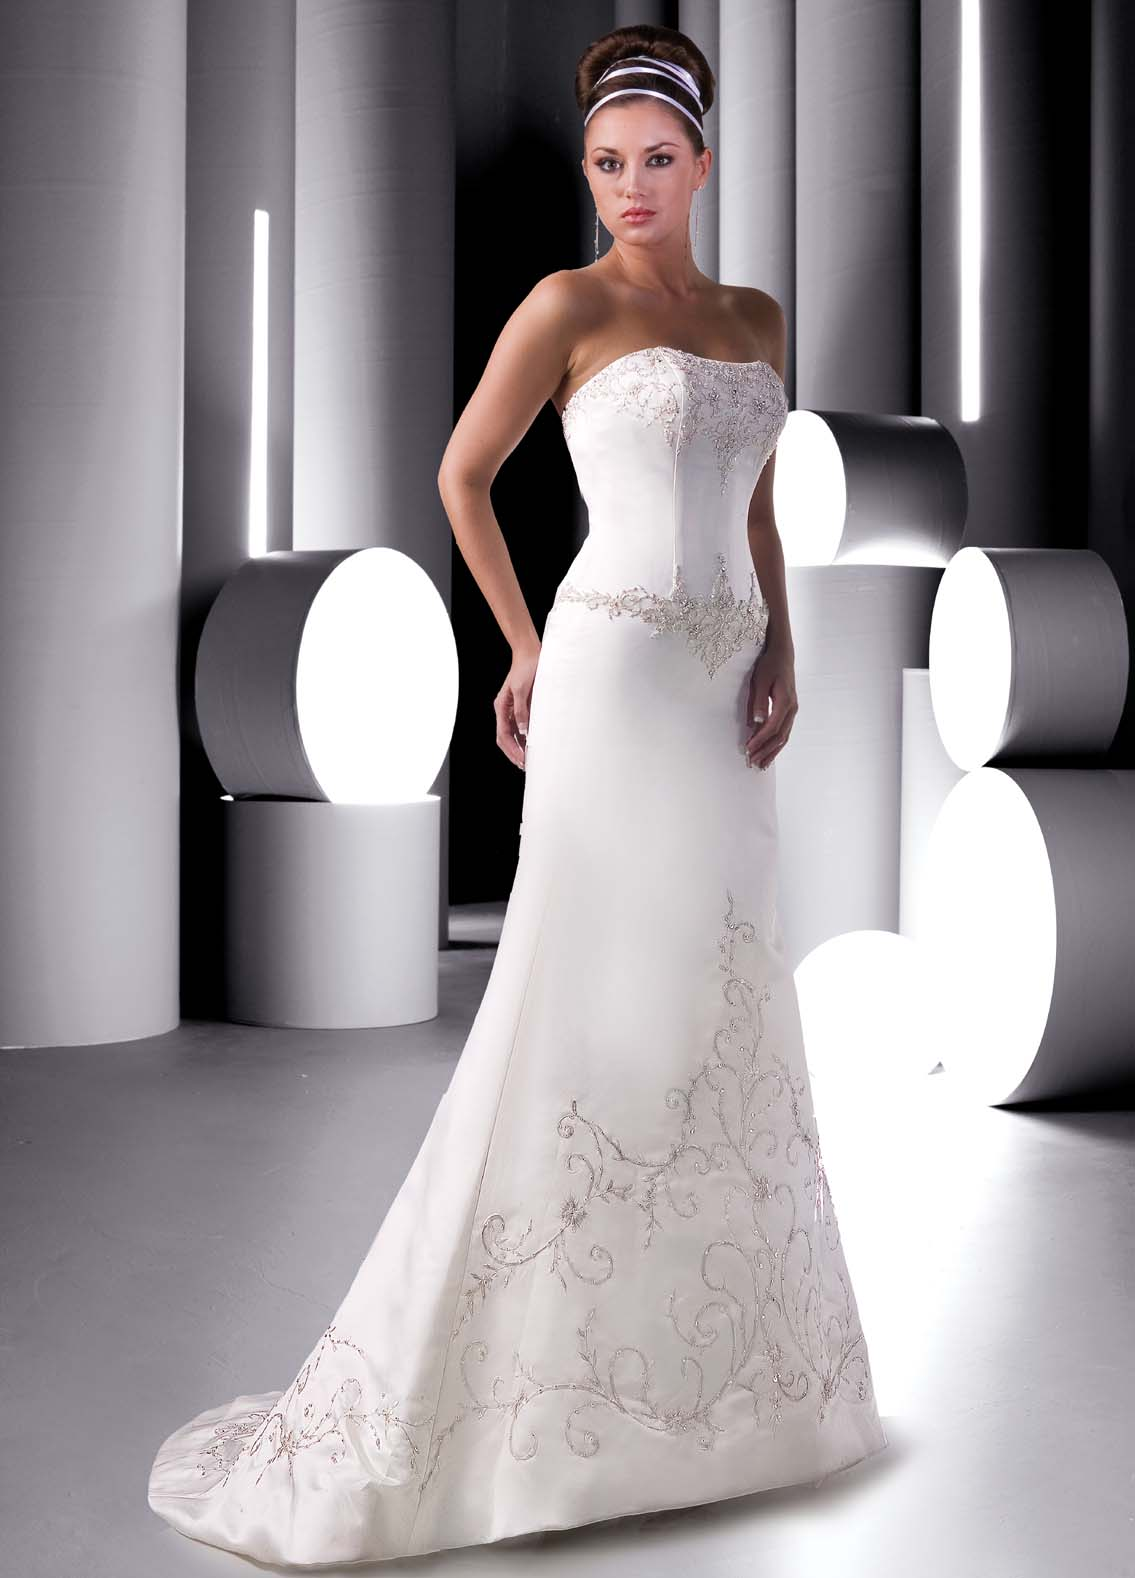 Designer Wedding Dresses Online - Overlay Wedding Dresses